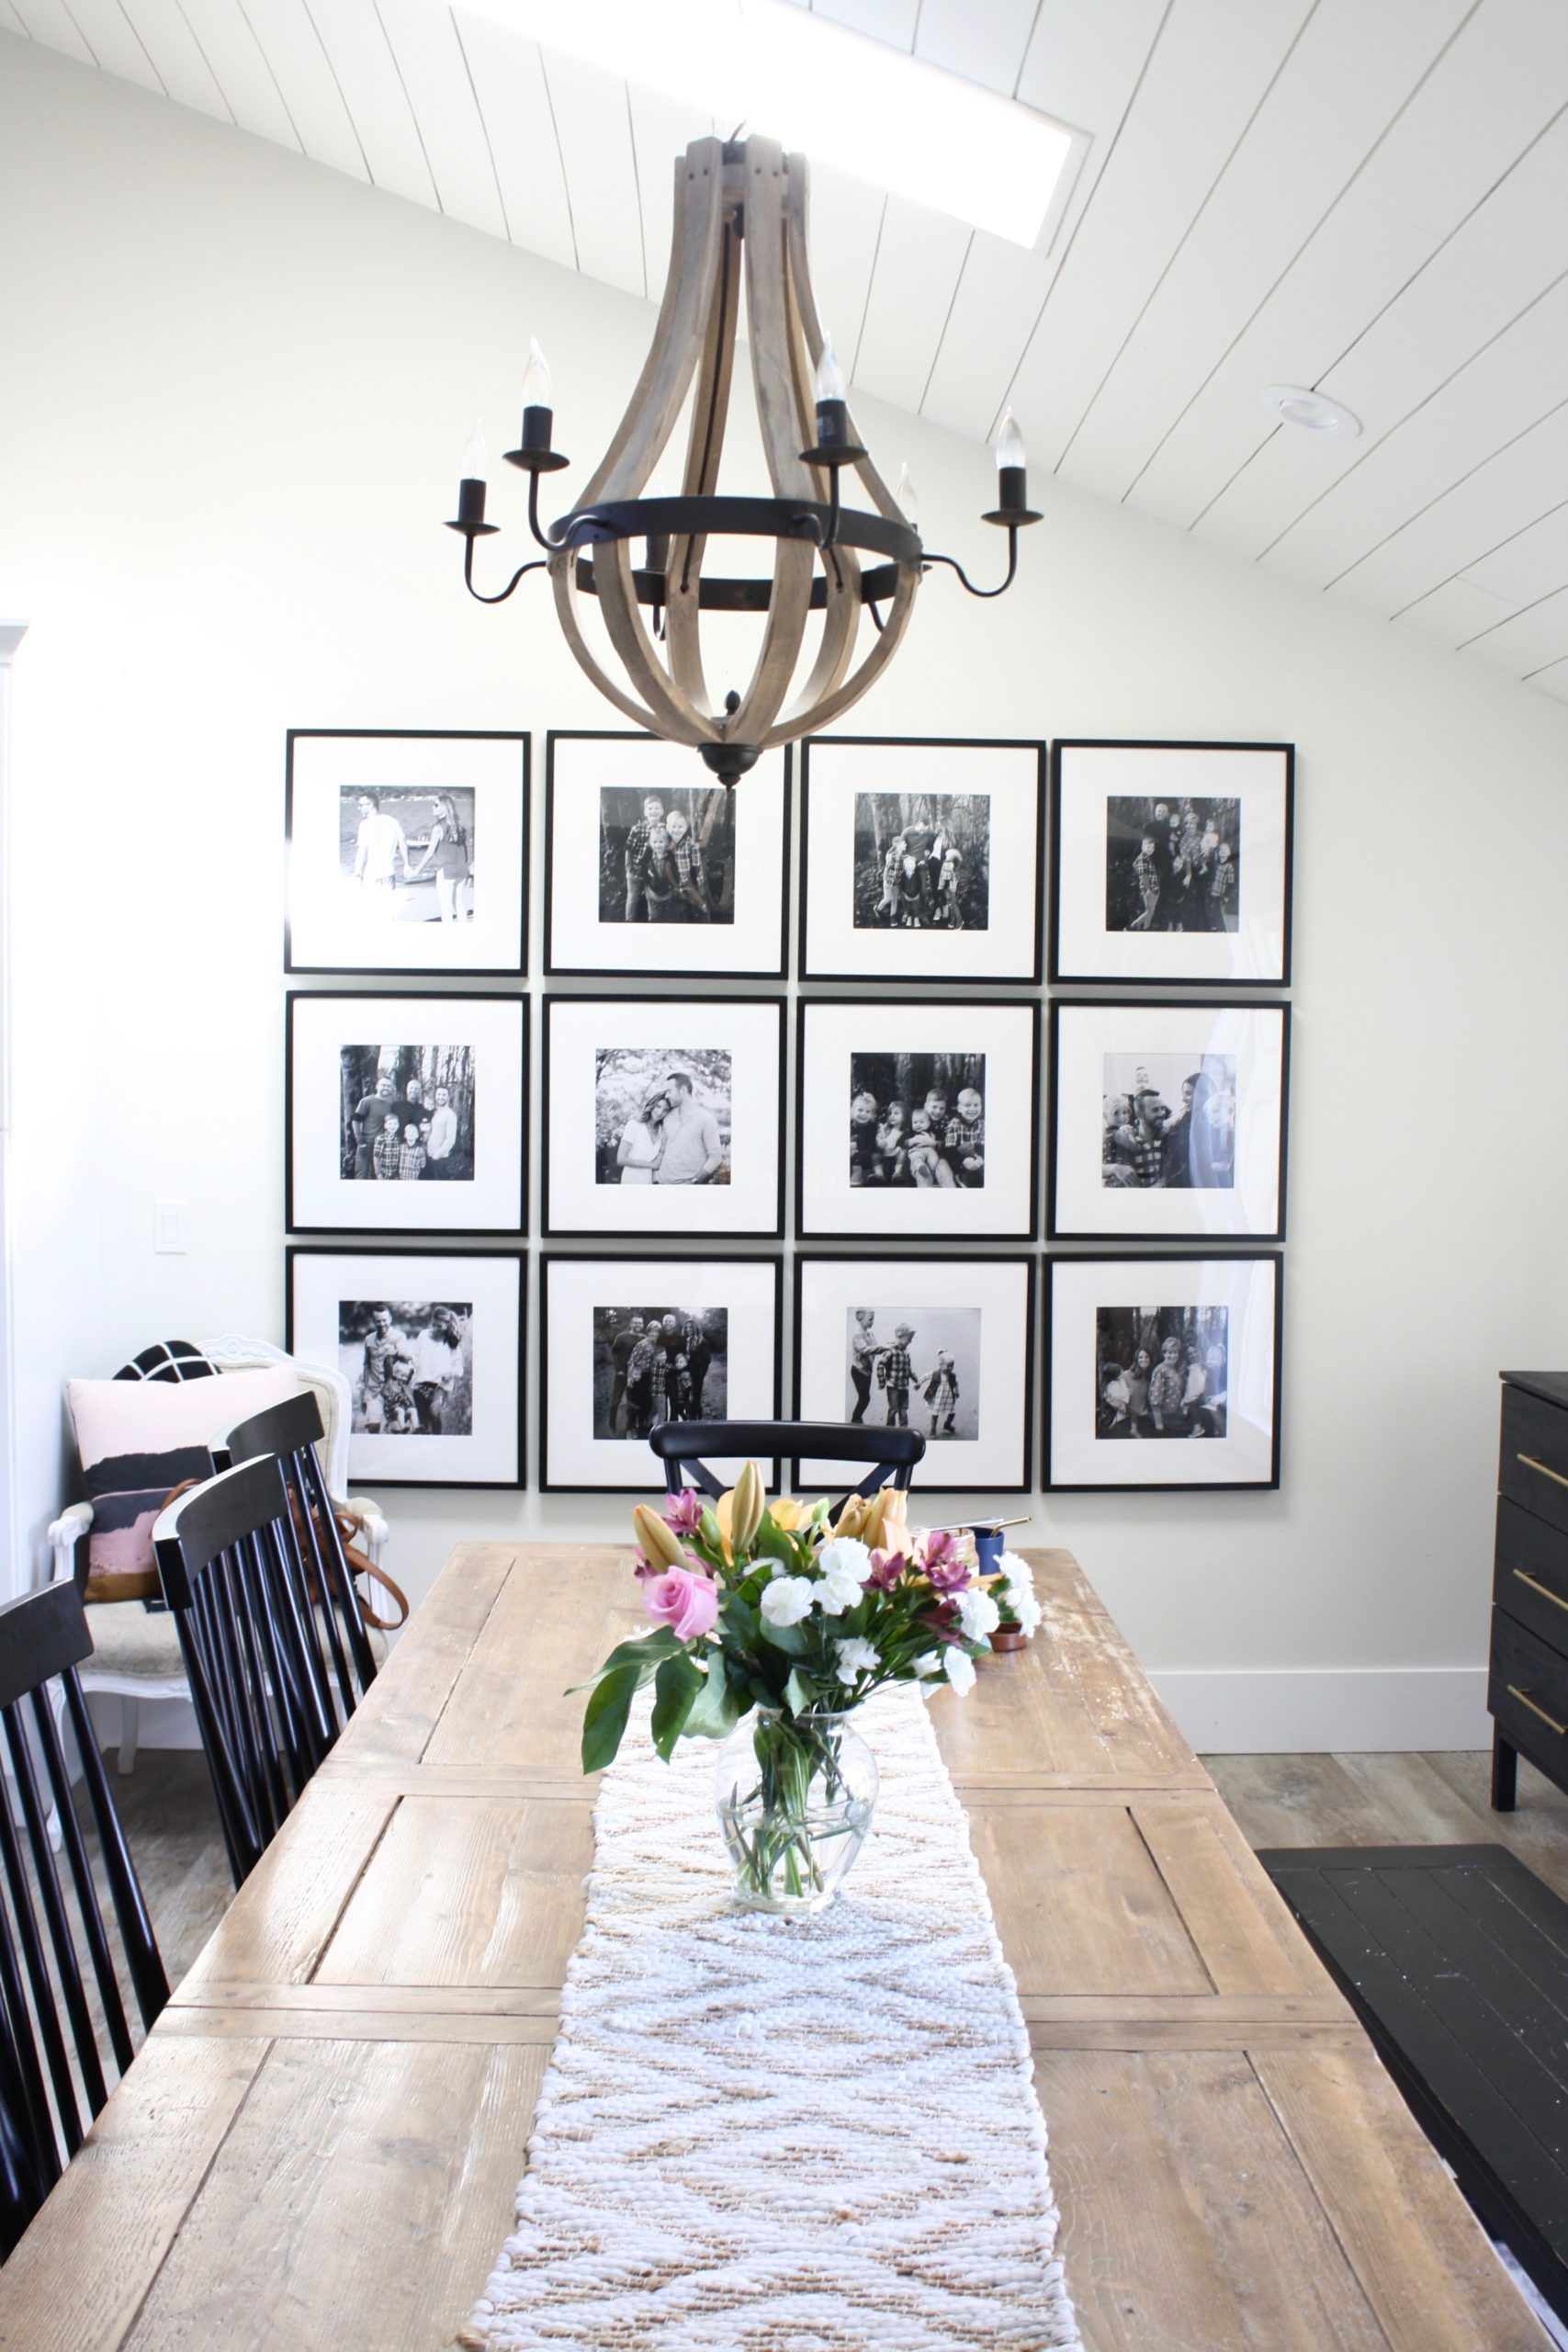 Creating Home: Gallery Wall In the Dining Room – Design Style Purpose